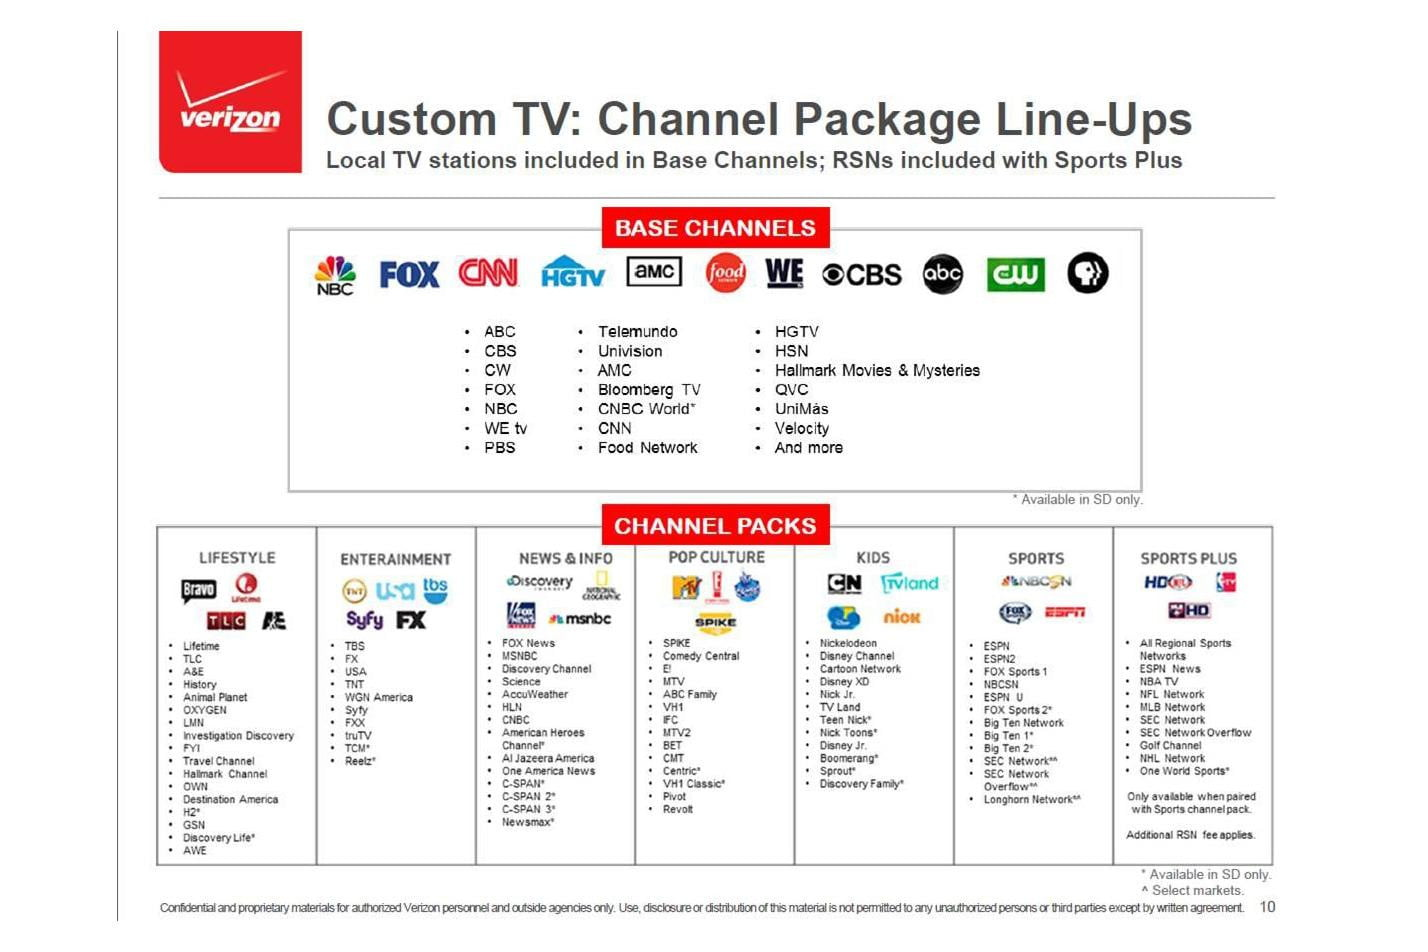 Verizon fios nfl network channel number - Verizon Custom Fios Tv More Channels Package